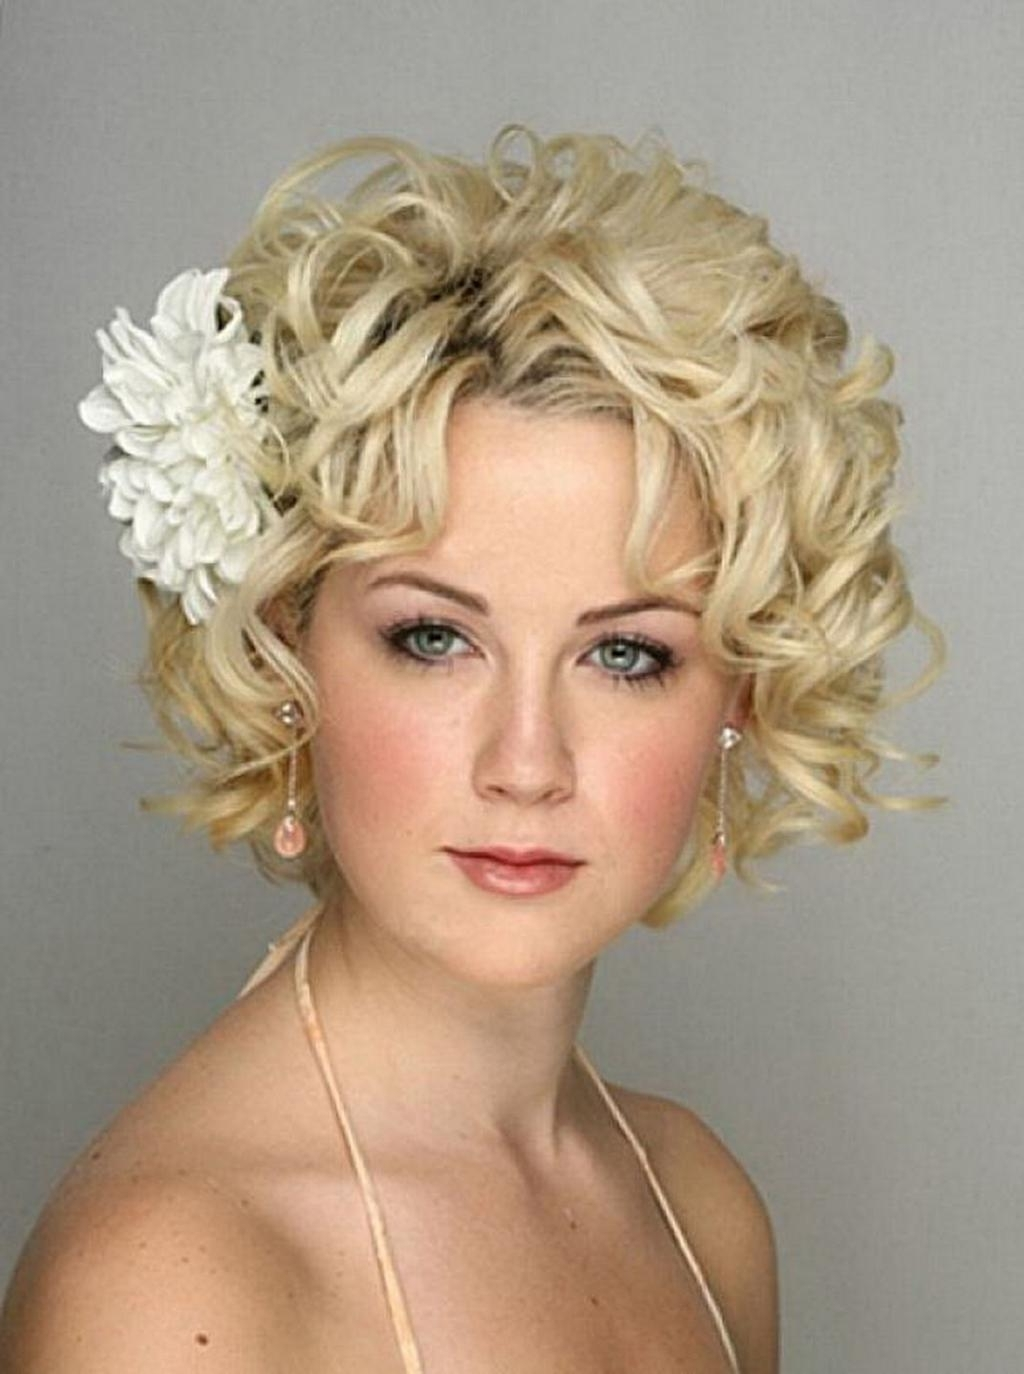 Short Wedding Hairstyles Look Pretty With Bridal Ideas Bridesmaid Within Fashionable Cute Wedding Hairstyles For Short Curly Hair (View 12 of 15)